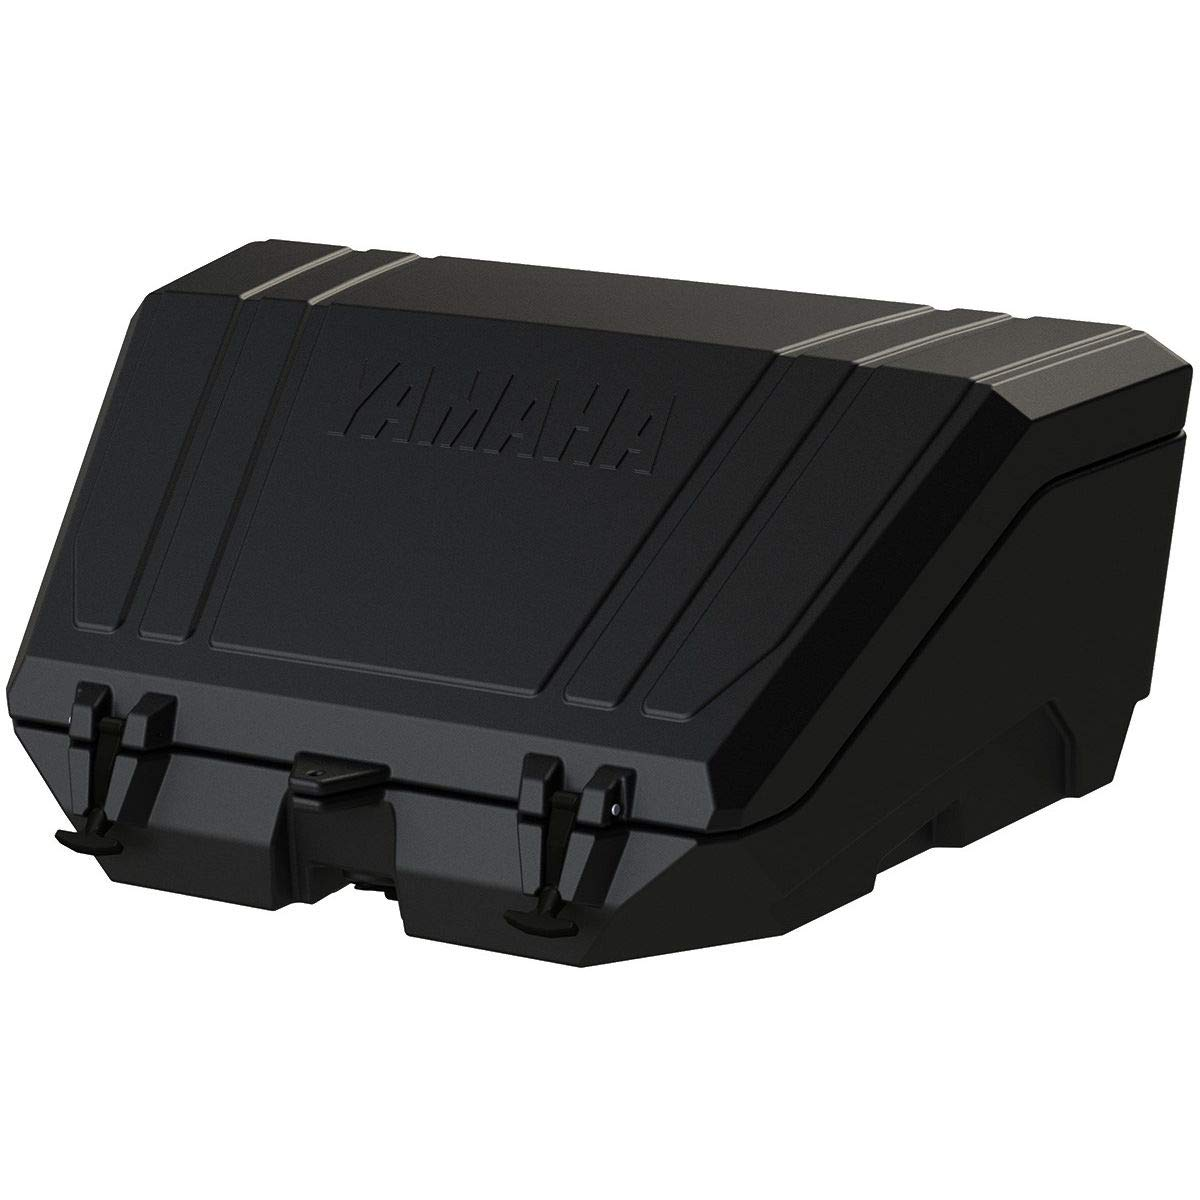 YAMAHA 2HC-F83P0-V0-00 Rear Cargo Box